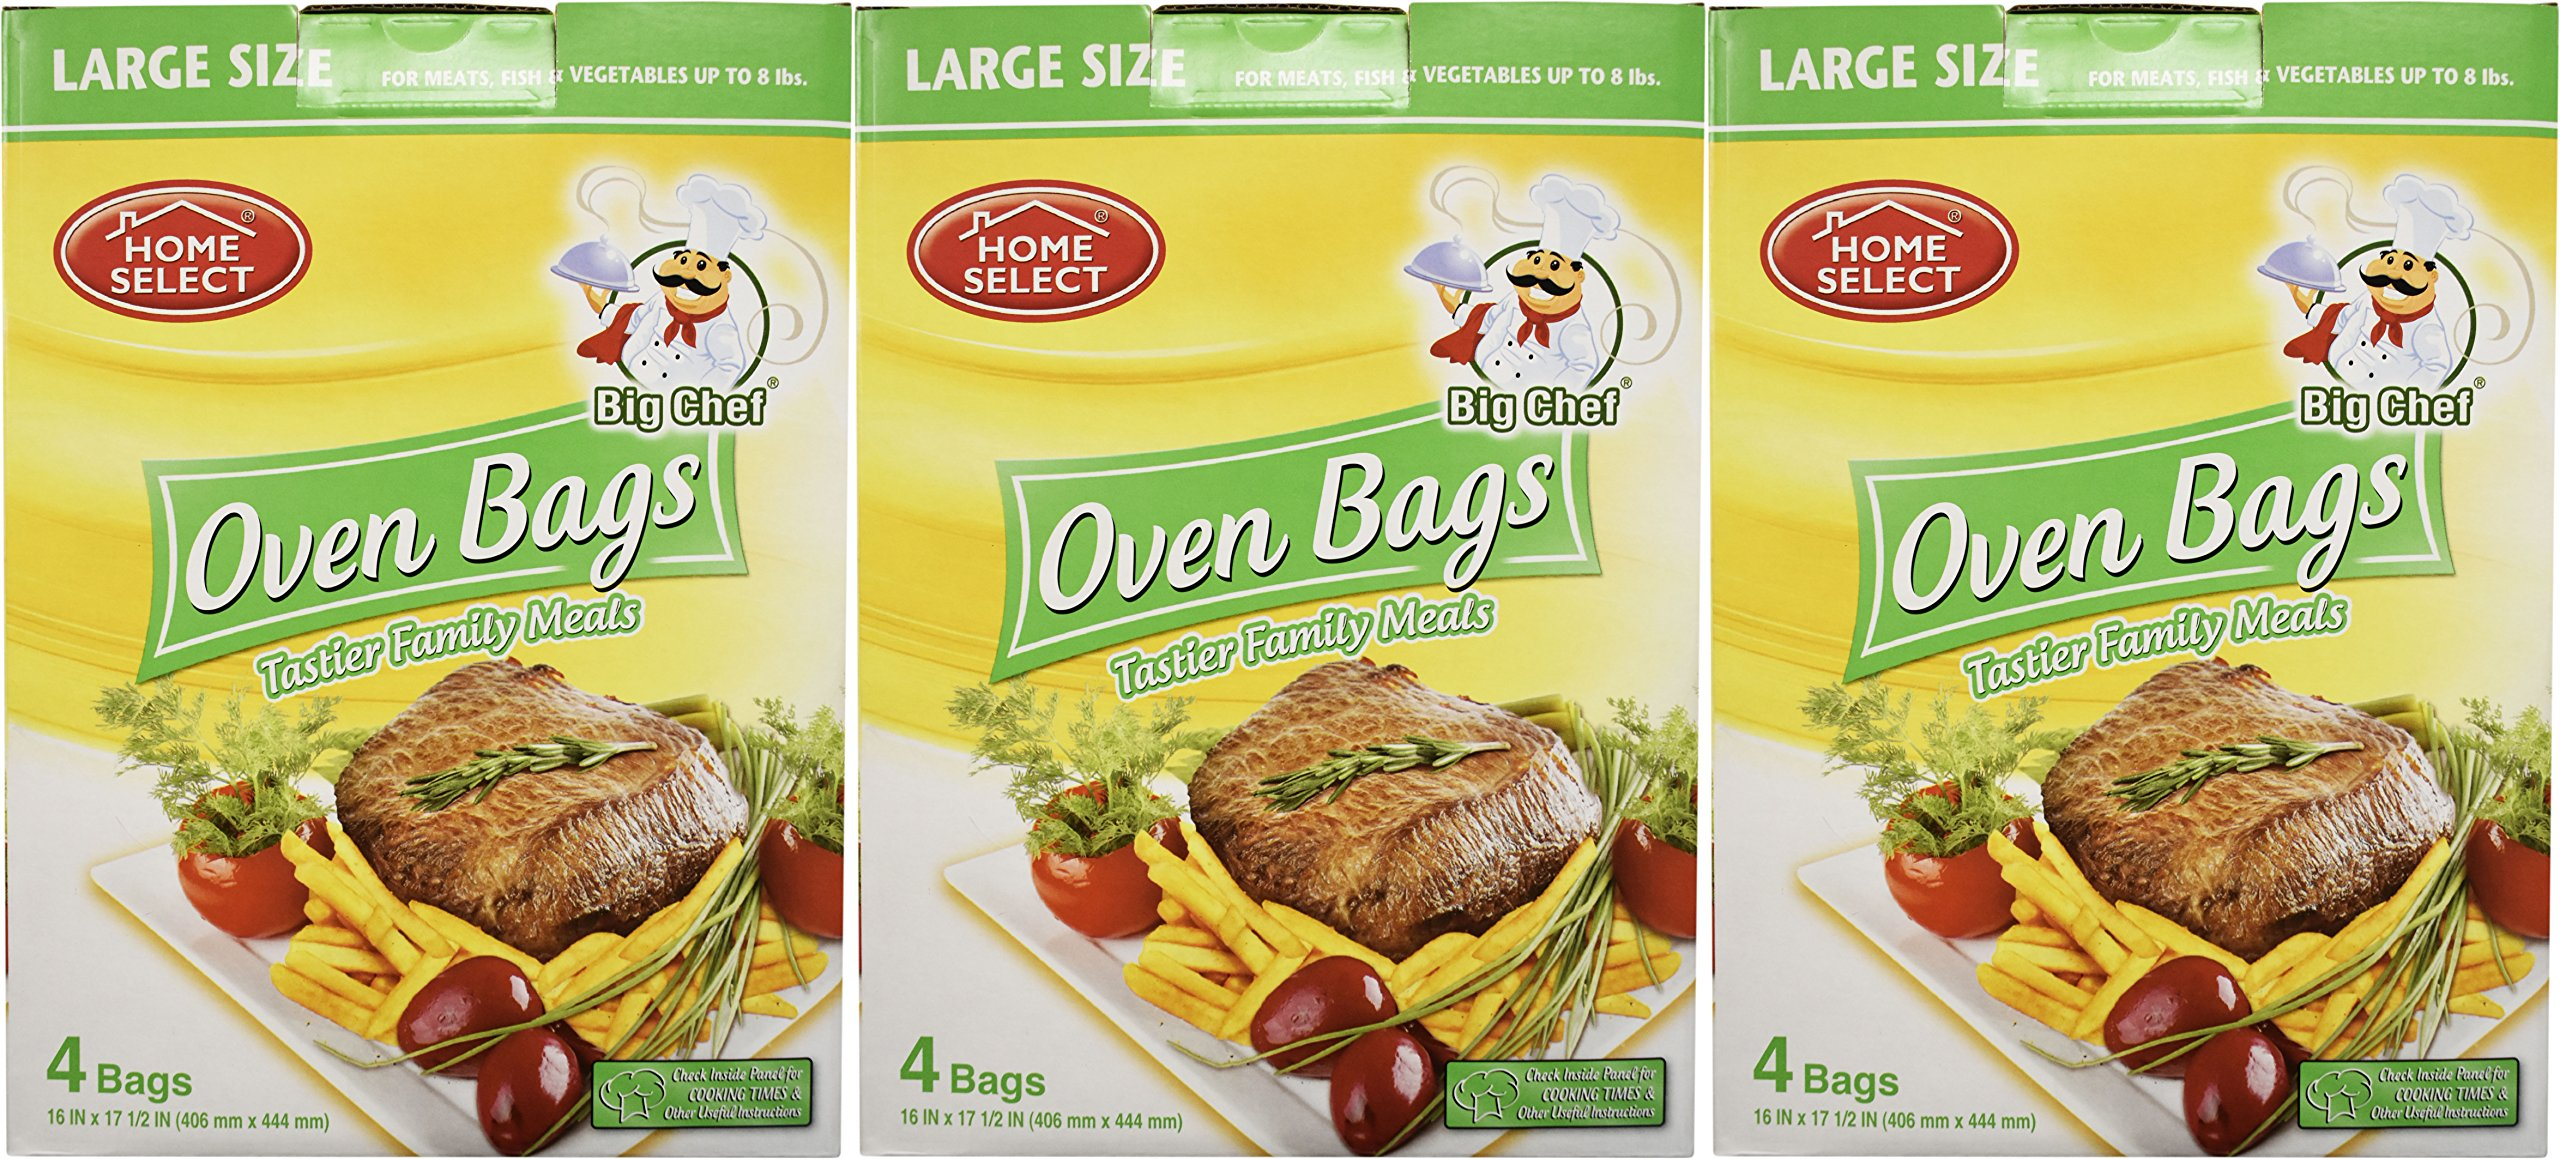 Set of 24 Big Chef Large Size Oven Bags! For Meats, Fish, and Vegetables Up to 8 Pounds! Makes Food Juicer and Tastier! No More Messy Clean-Ups! (24)